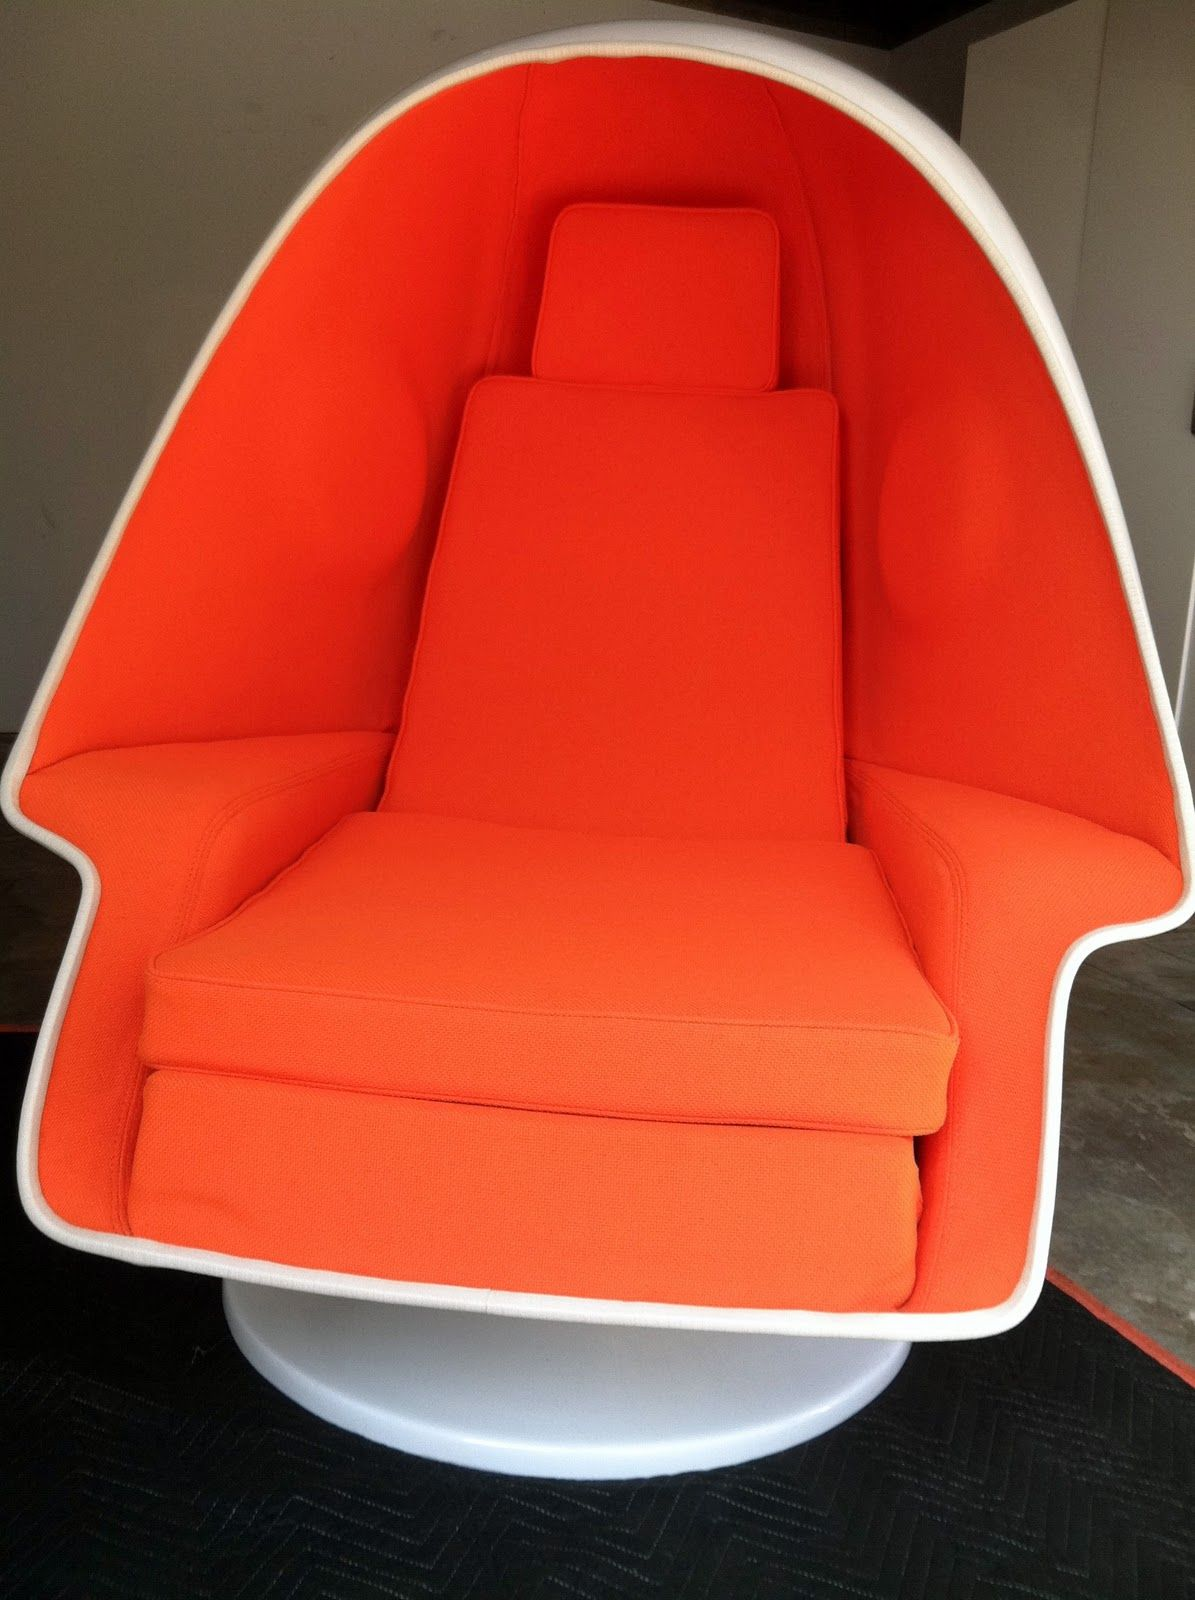 Exceptionnel Lee West Alpha Egg Lounge Speaker Chair